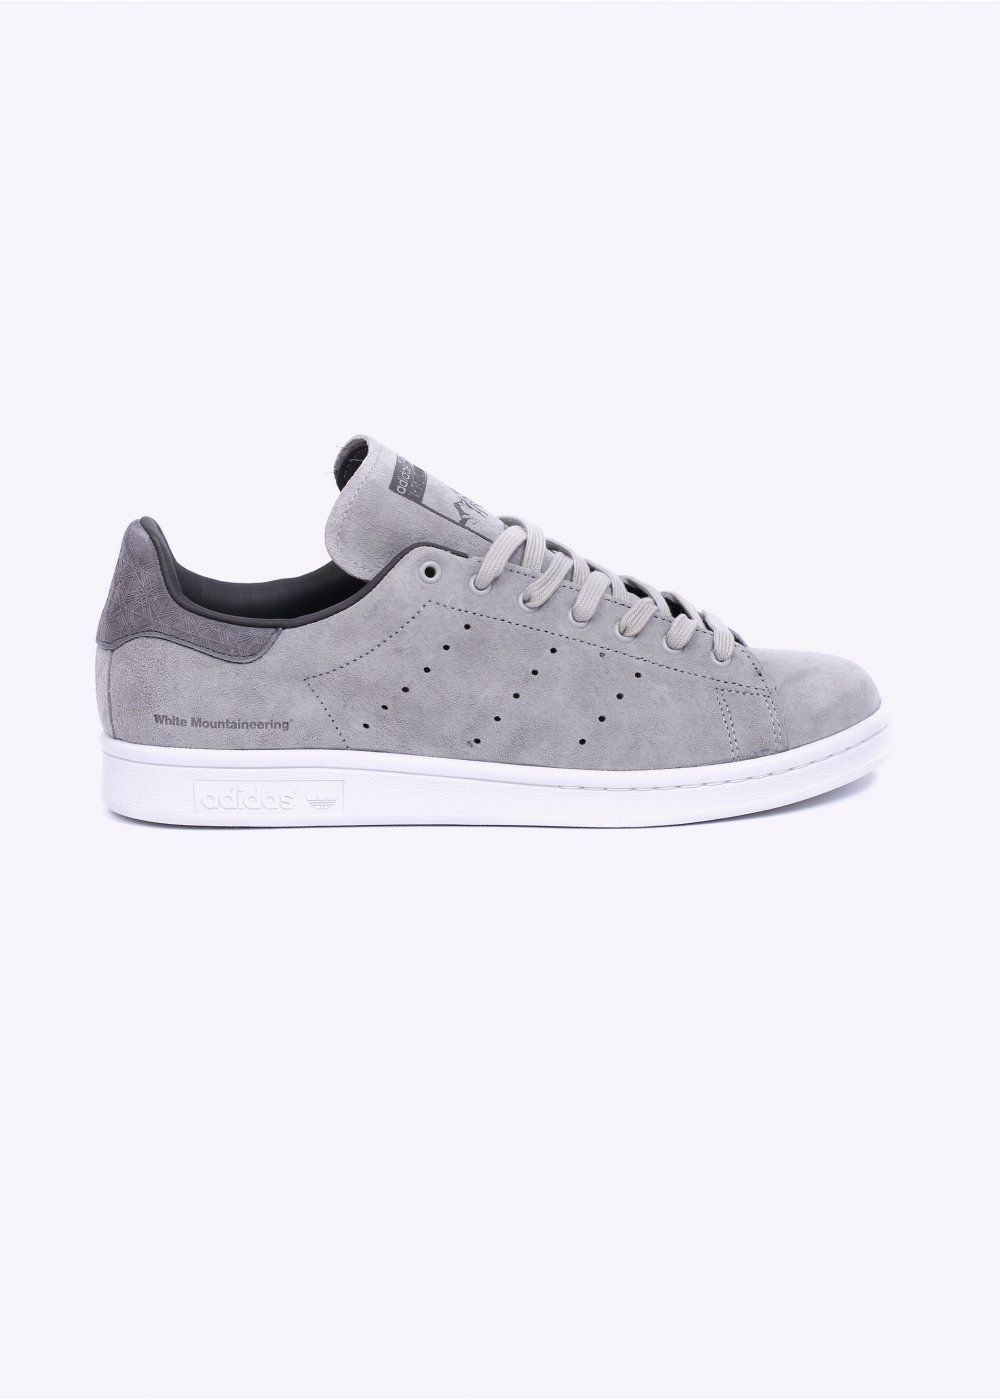 8ce91647afa Adidas Originals Footwear x White Mountaineering Stan Smith Trainers - Onix    White